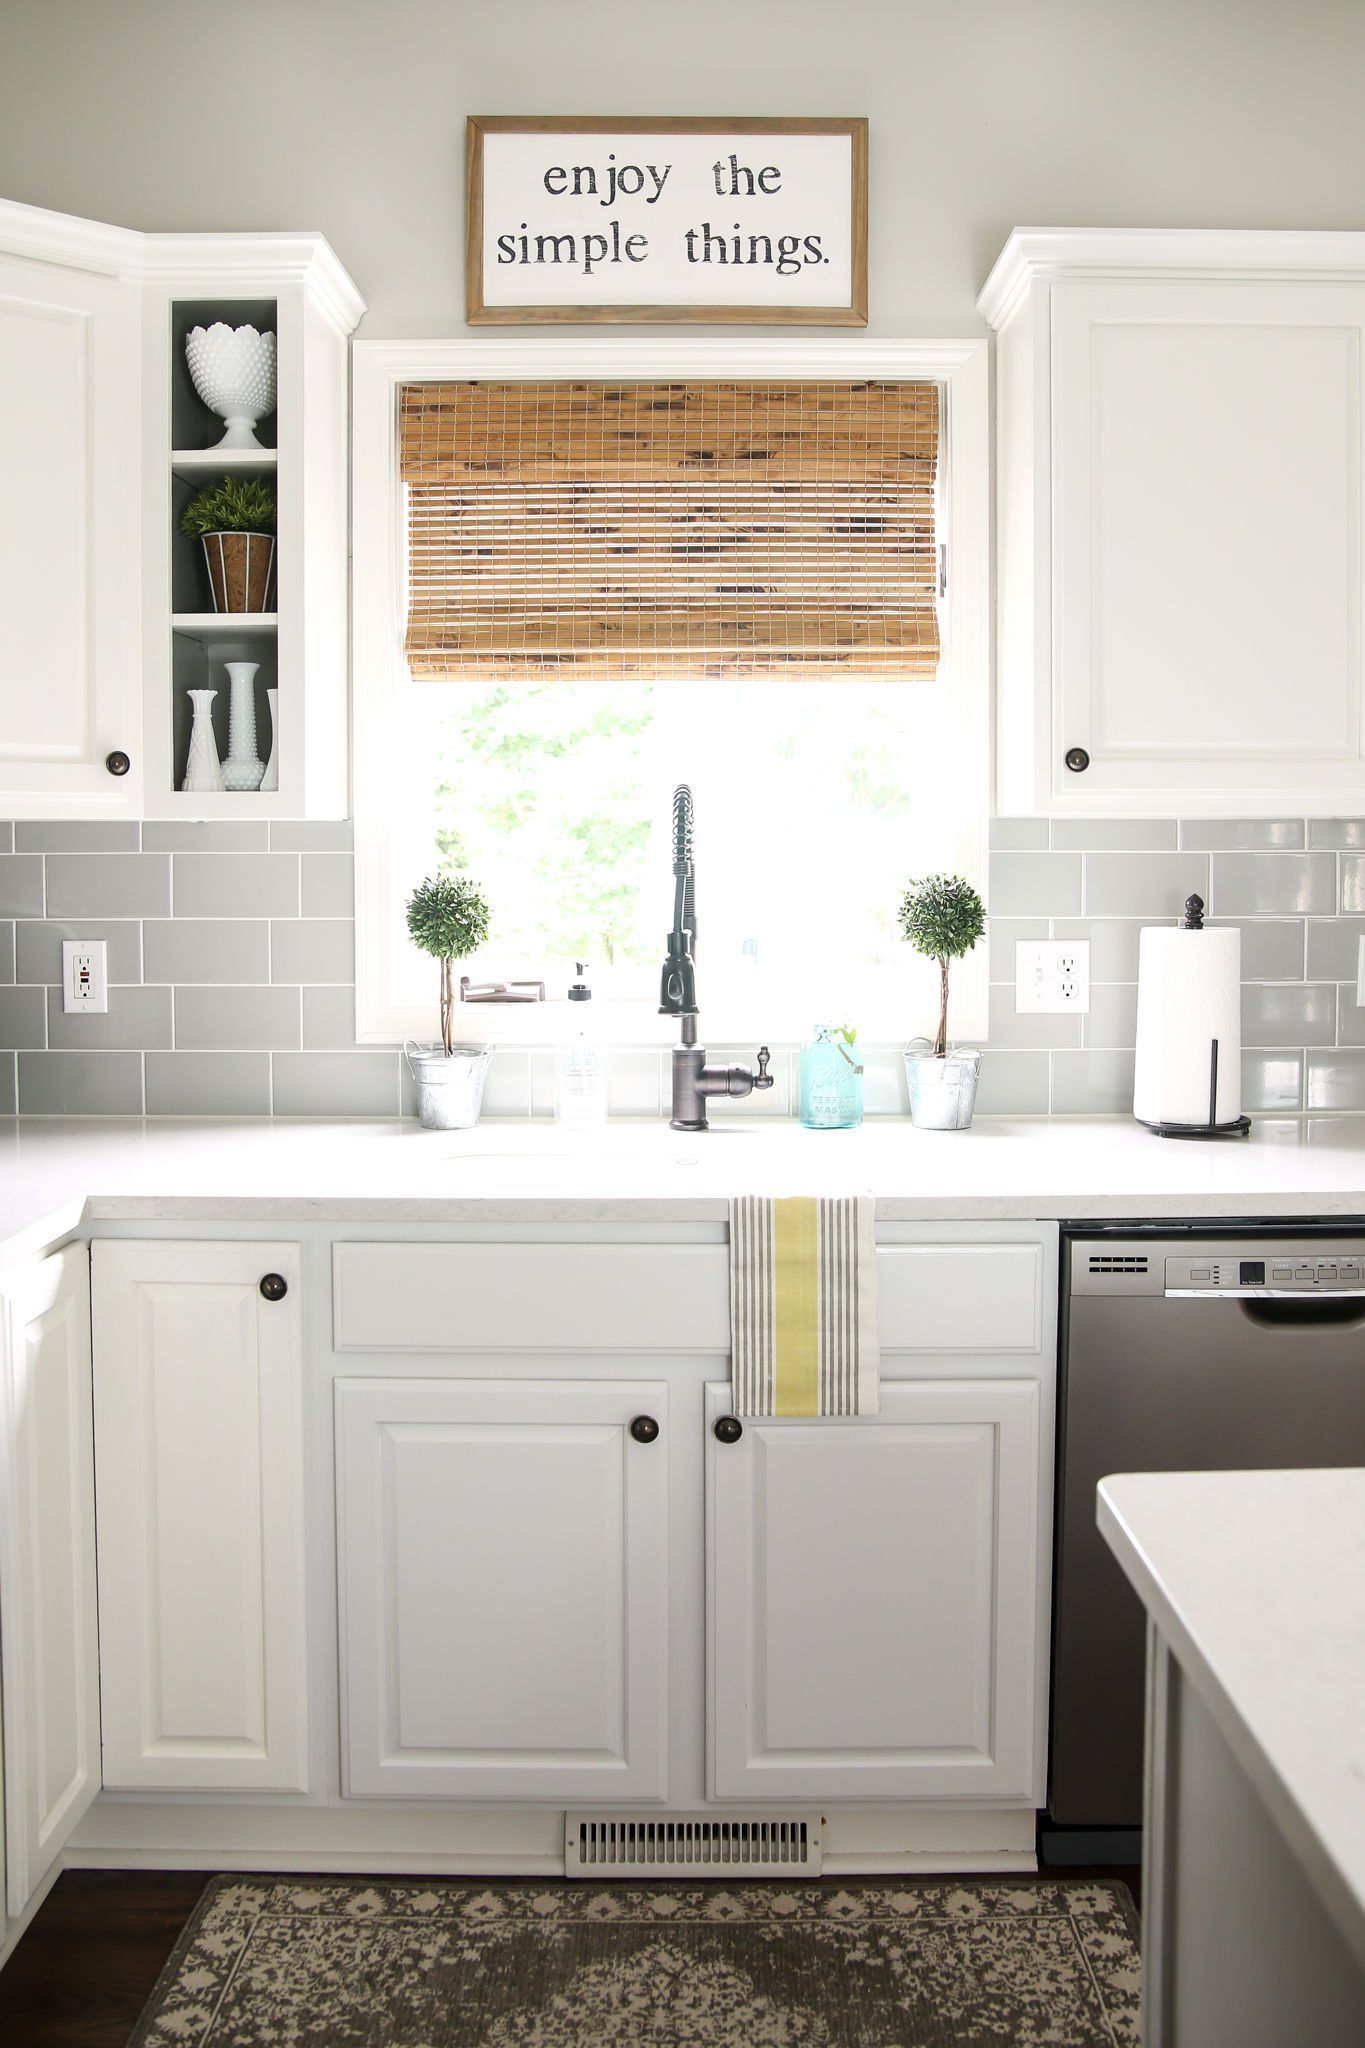 Bamboo Backsplash Modern Farmhouse Kitchen With Grey Subway Tile Backsplash